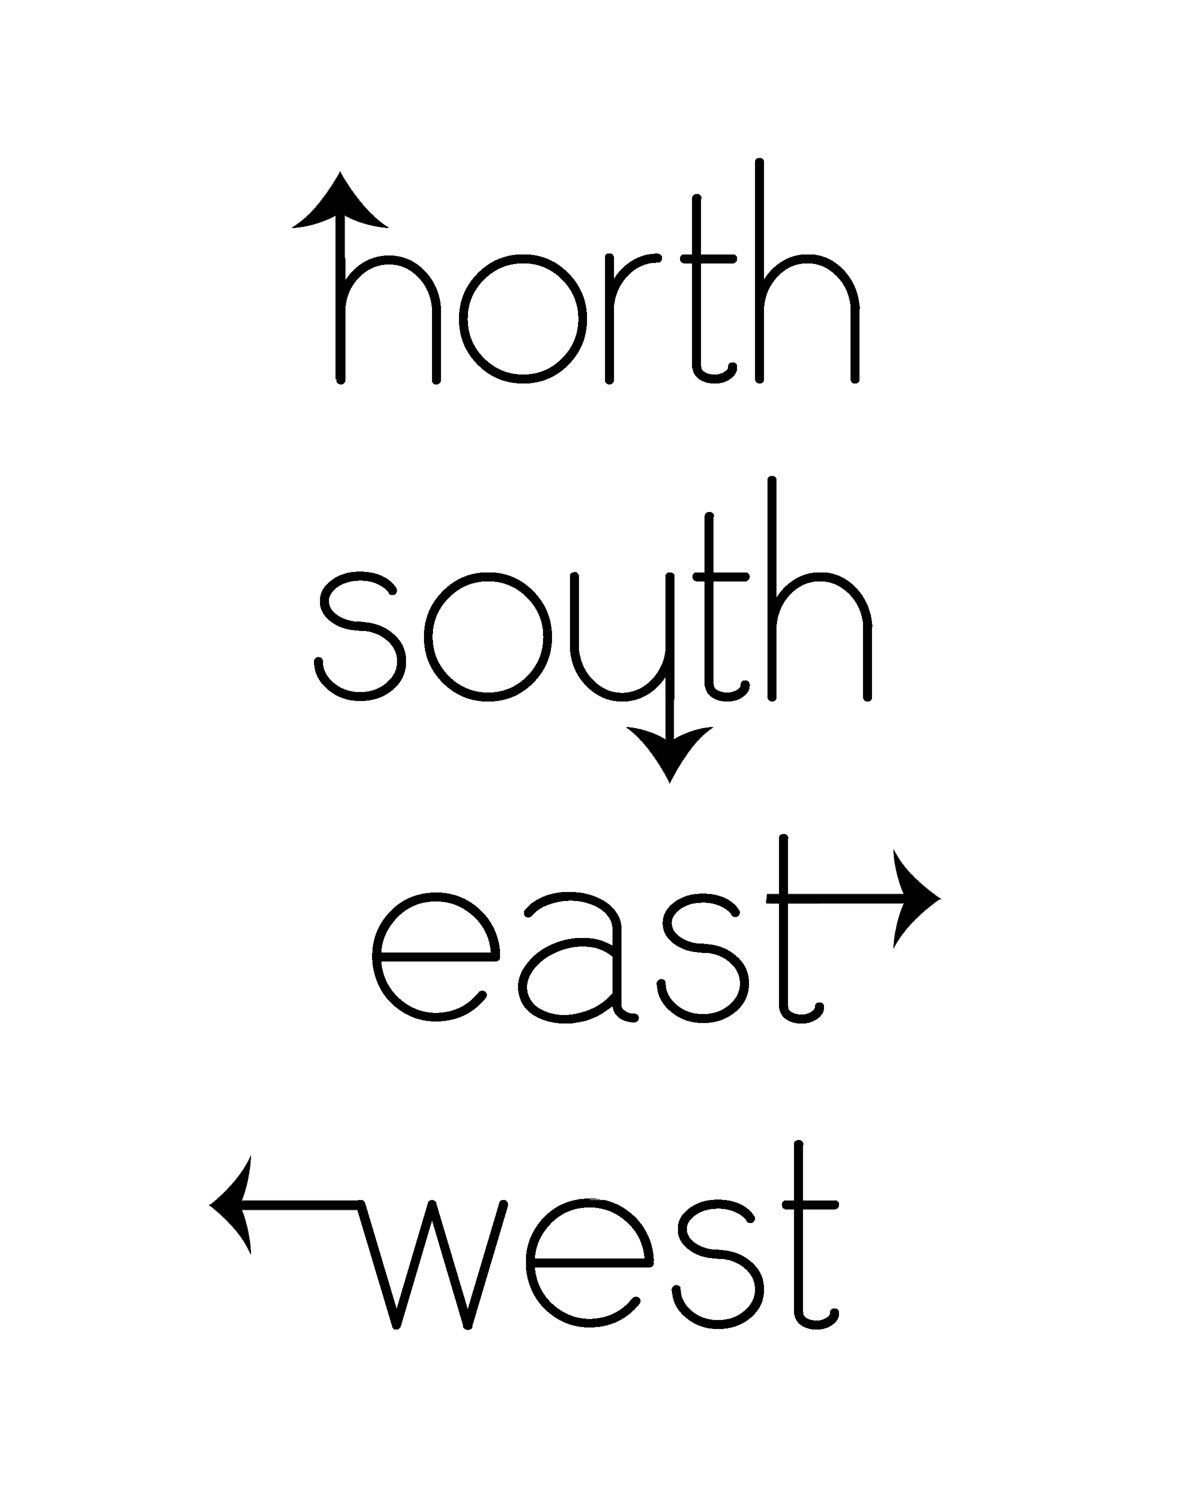 Arrows clipart south. North east west directions